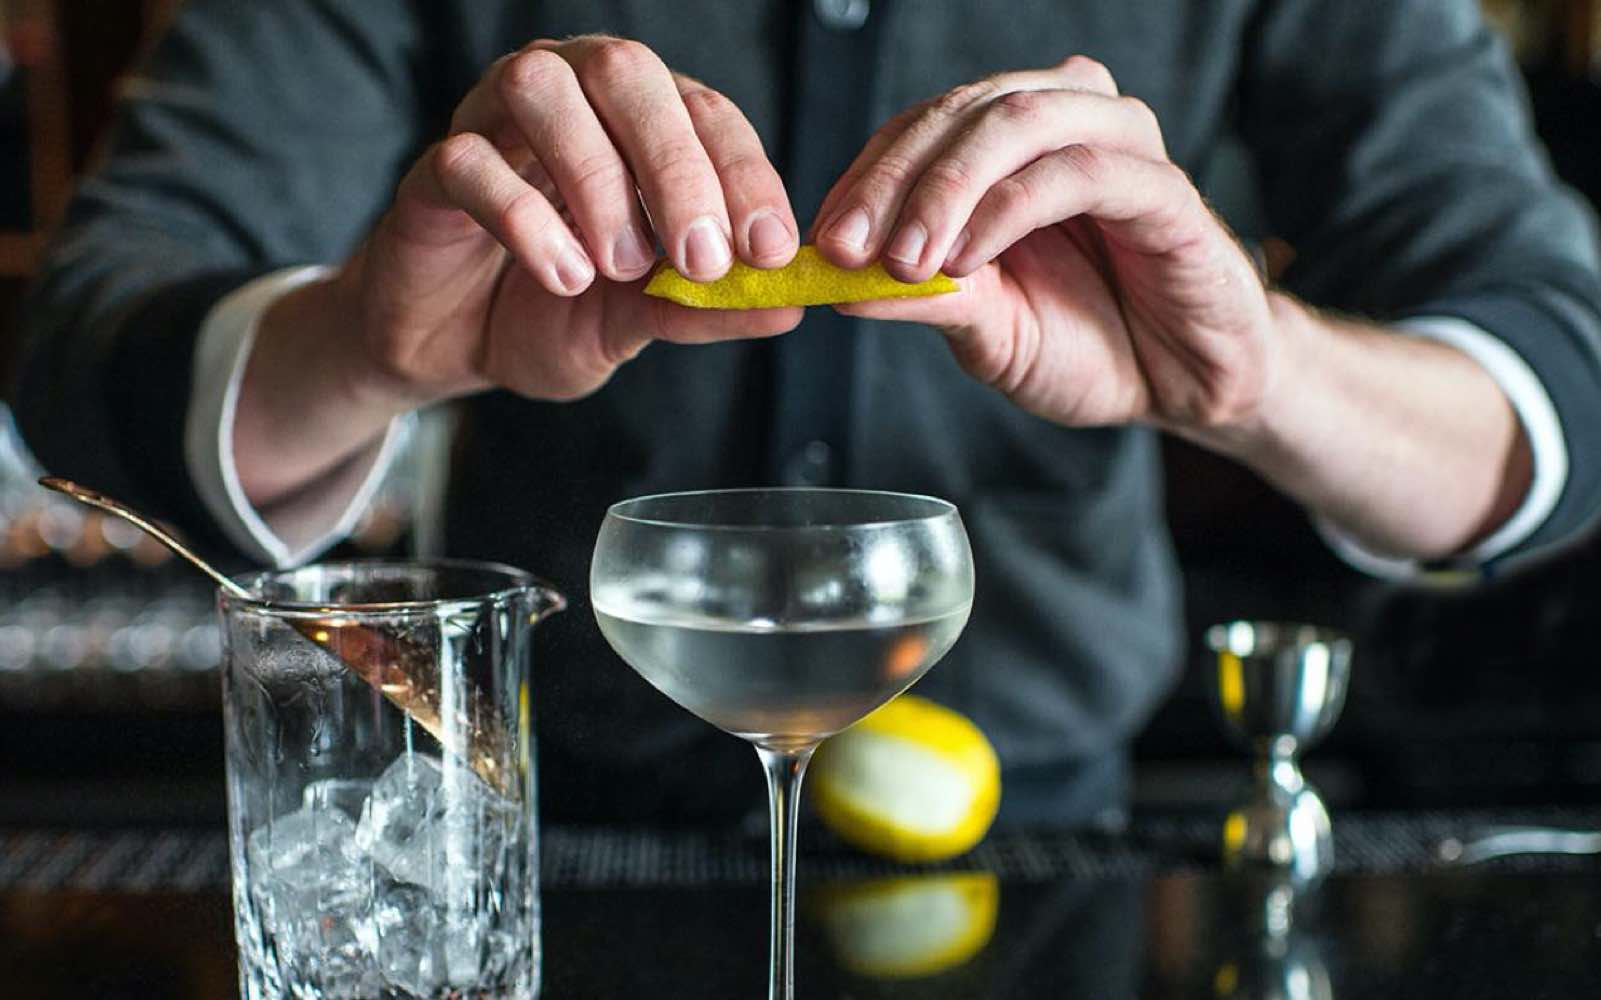 En klassisk Dry Martini cocktail